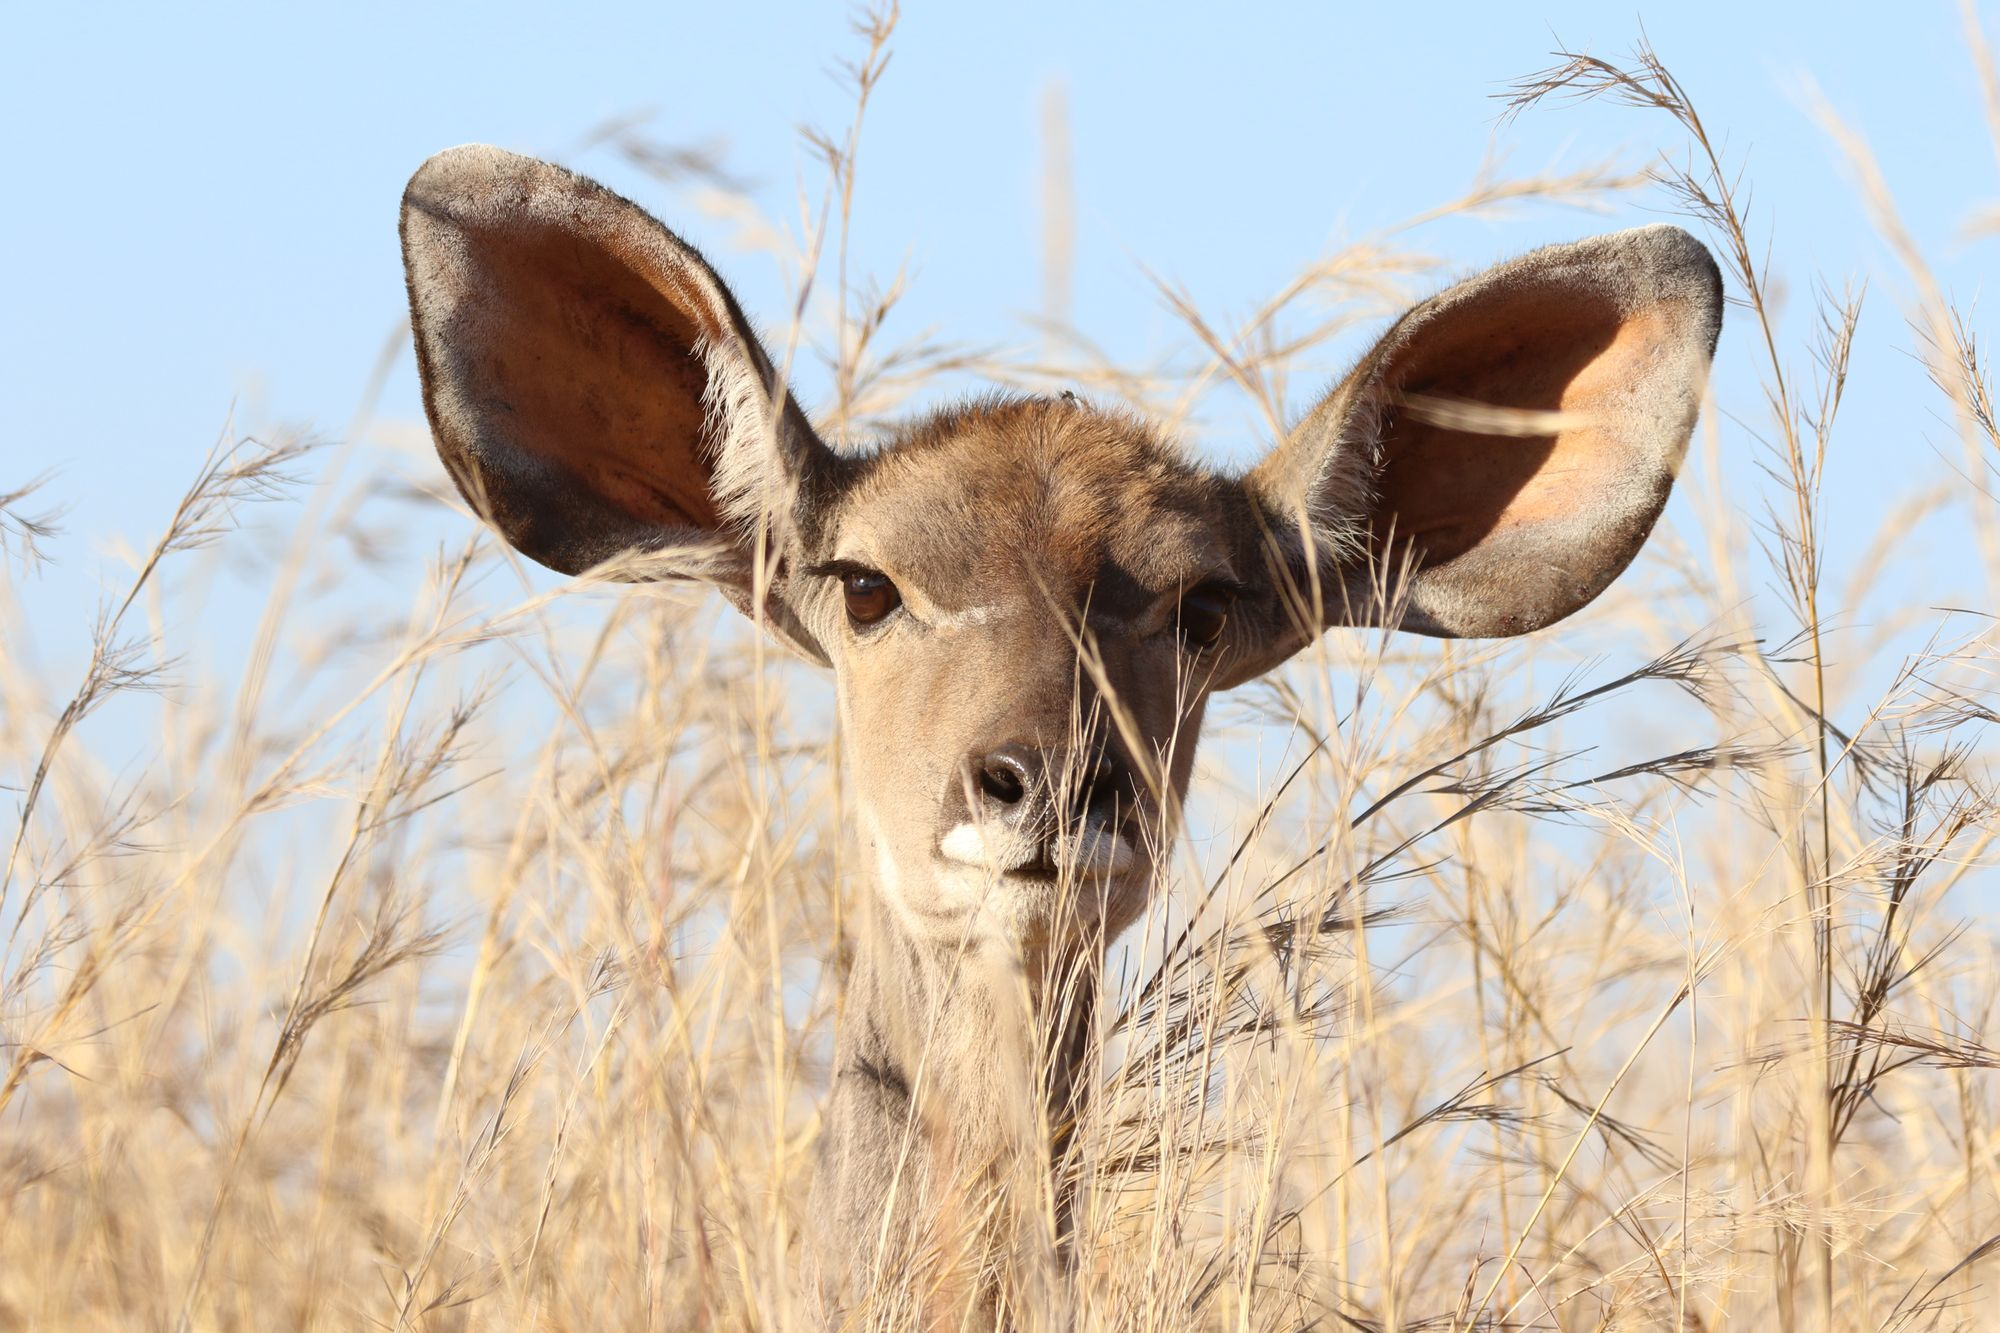 Deer with large ears in grass listening